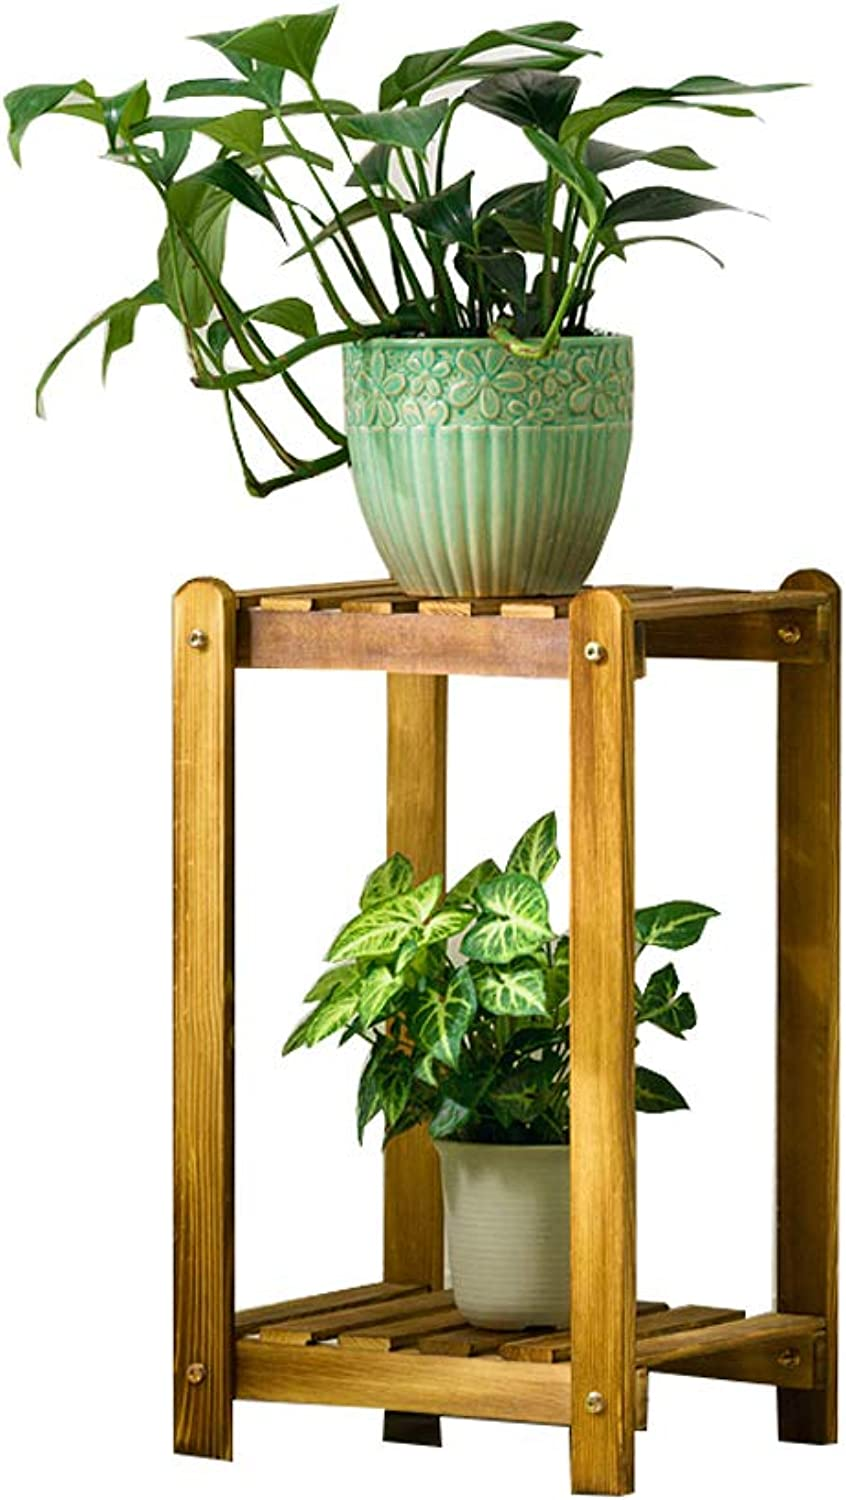 WYNZYHJ Plant Stand, Solid Wood Flower Shelf Floor Wooden Multi-Layer Space Saving Pot Rack (color   S)